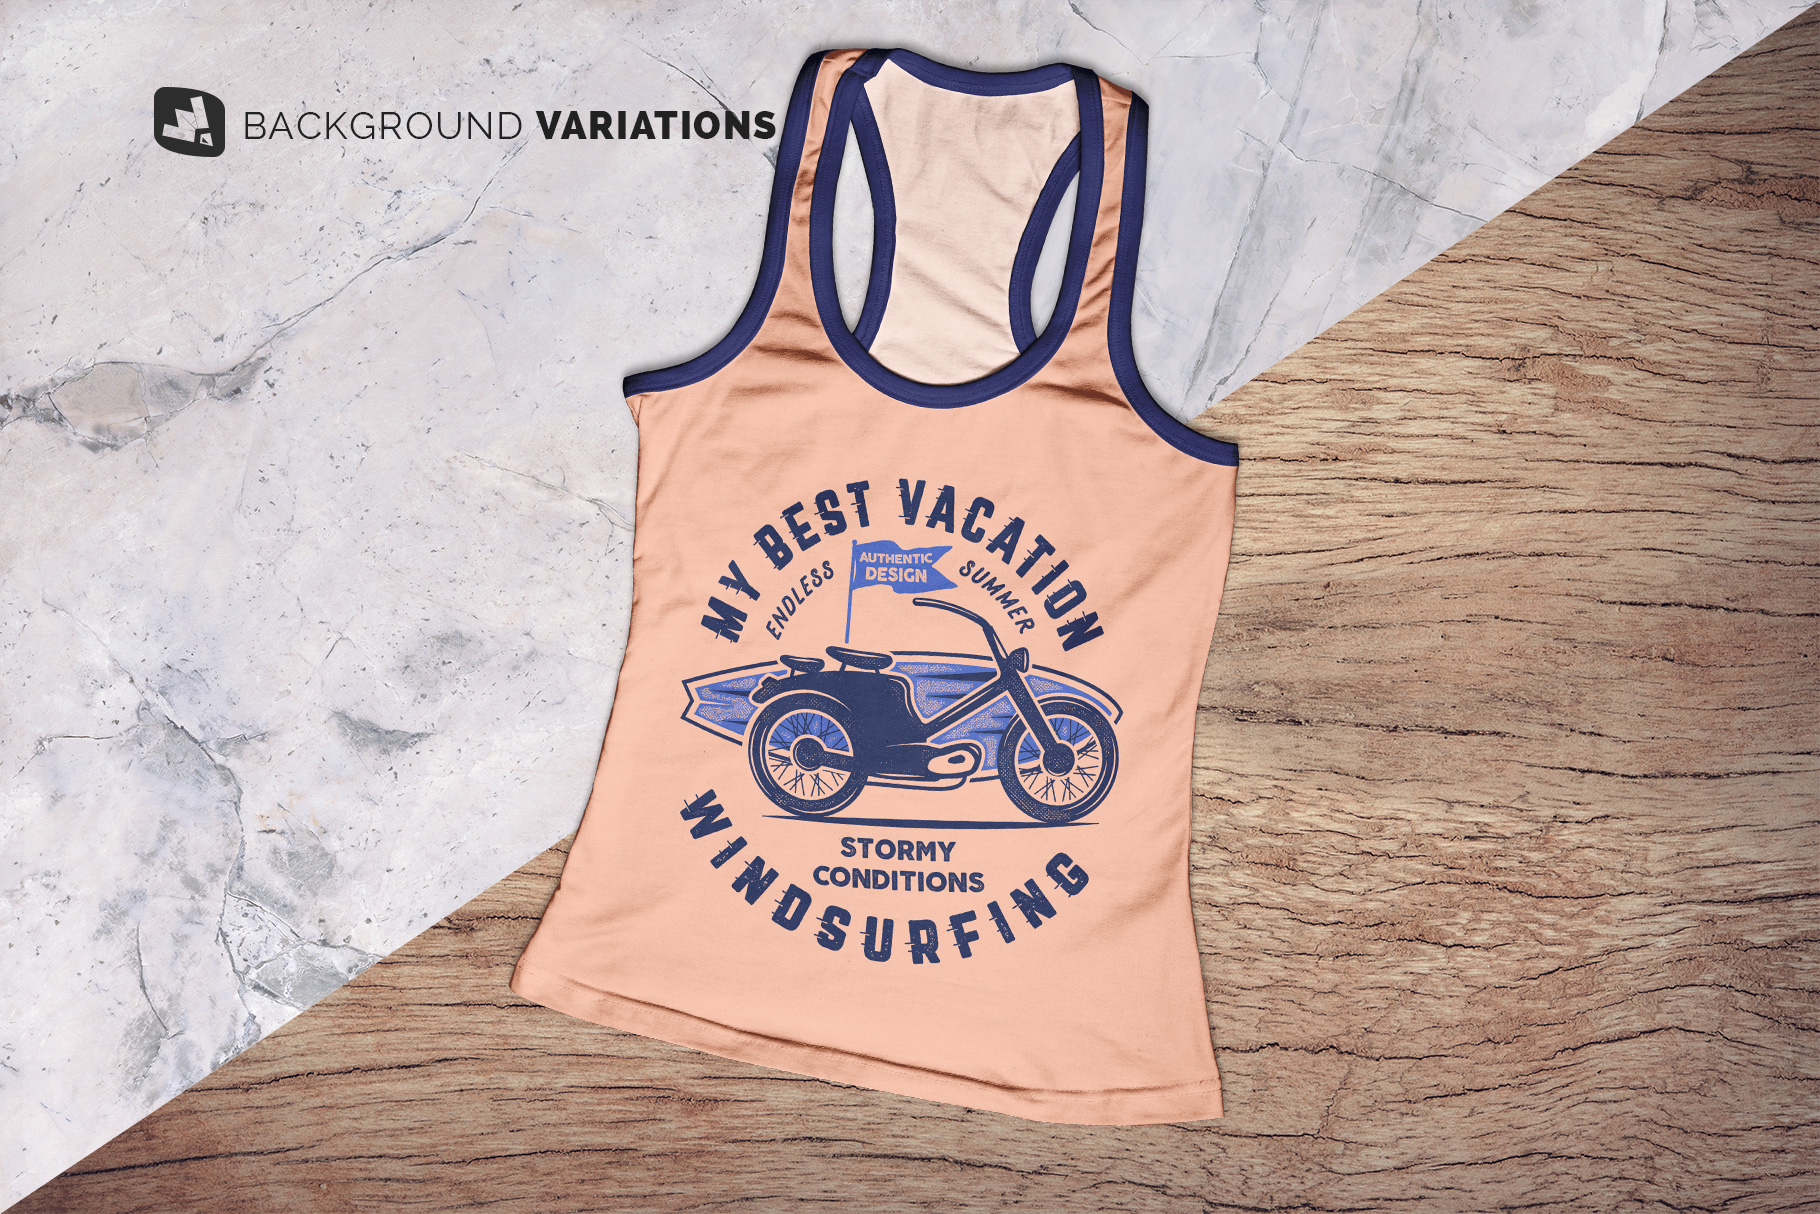 background options of the top view female tank top mockup